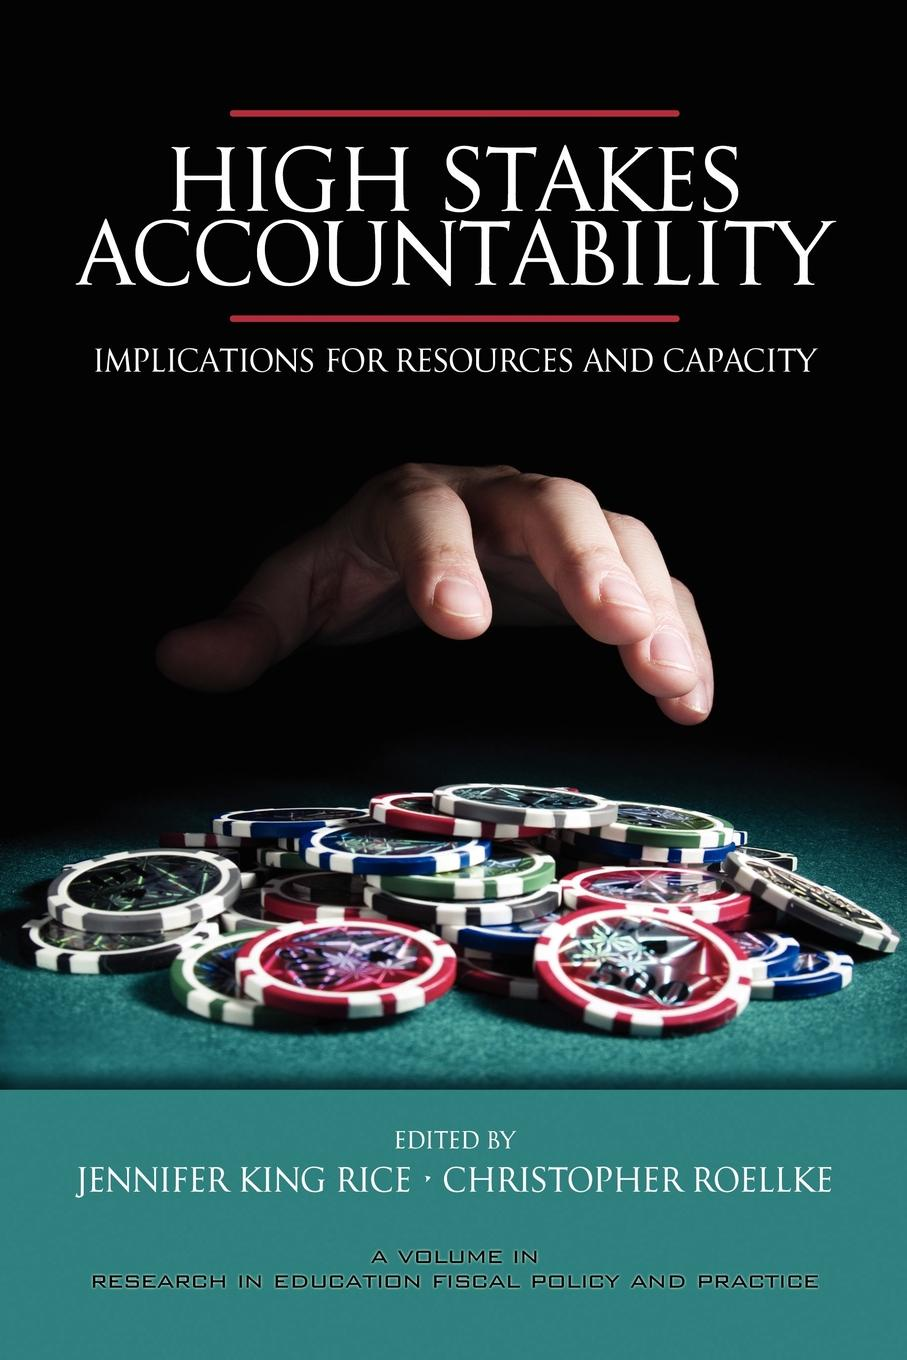 High Stakes Accountability. Implications for Resources and Capacity (PB) недорго, оригинальная цена